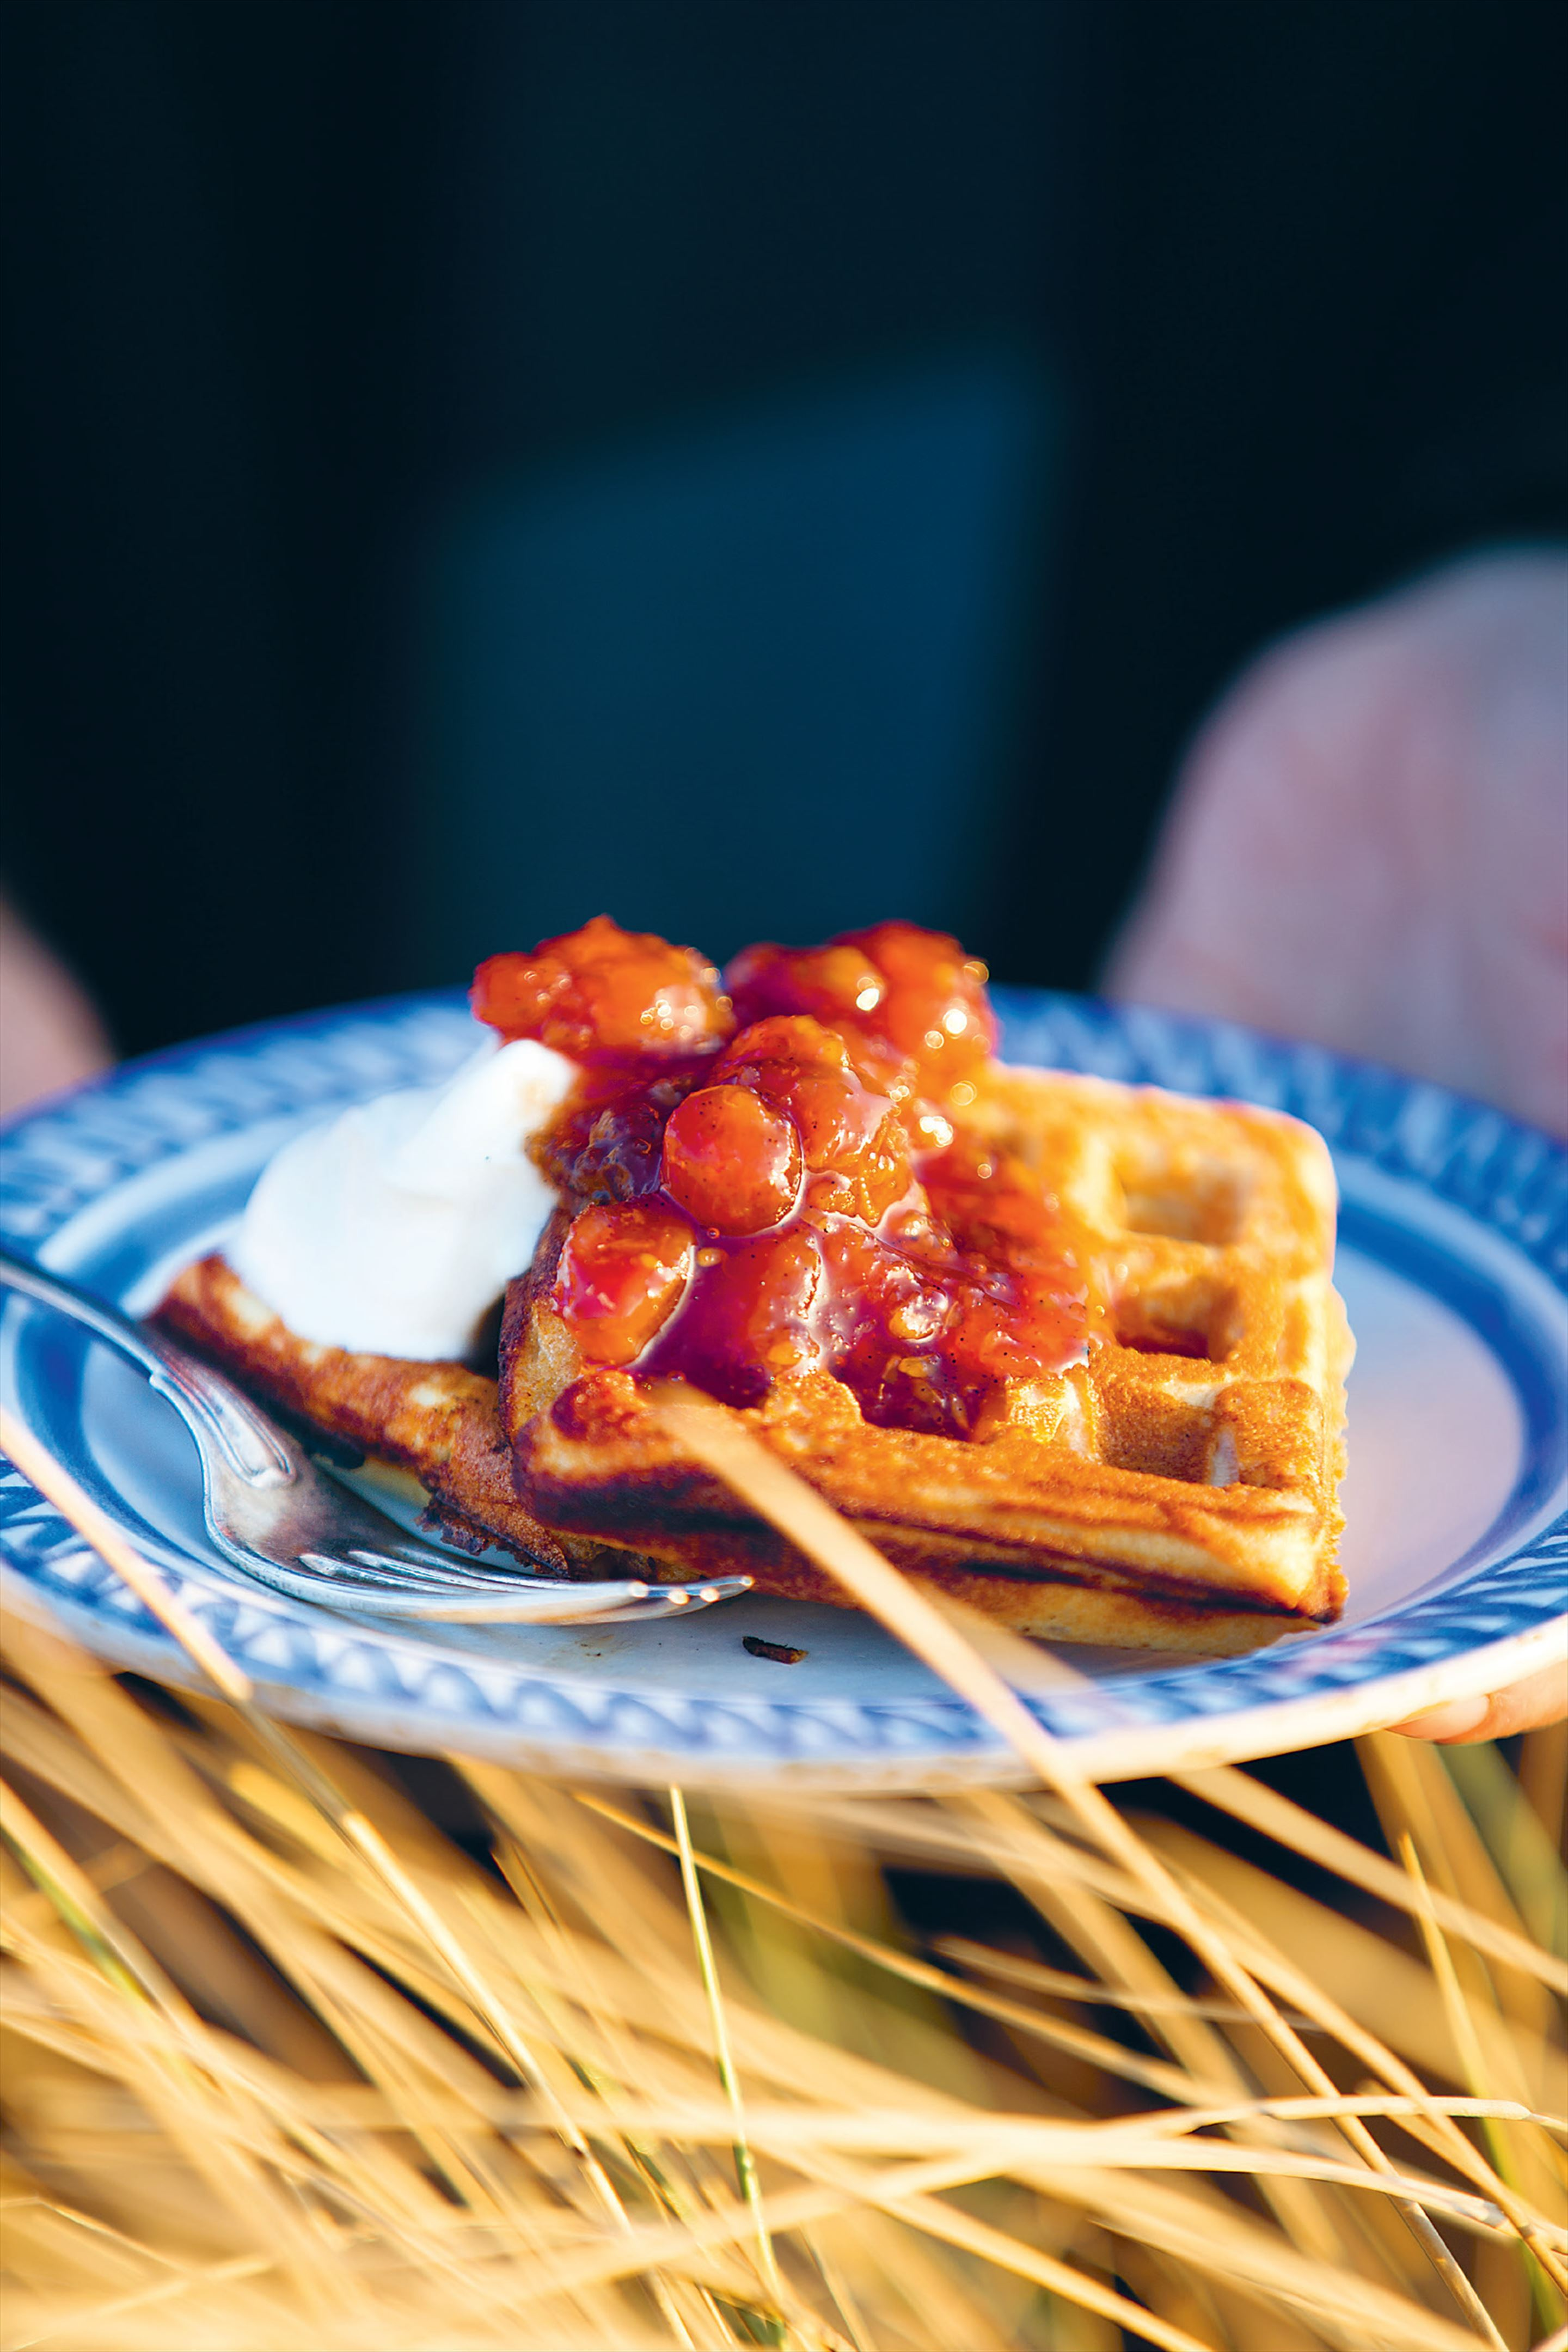 Waffles with red gooseberry jam and crème fraîche